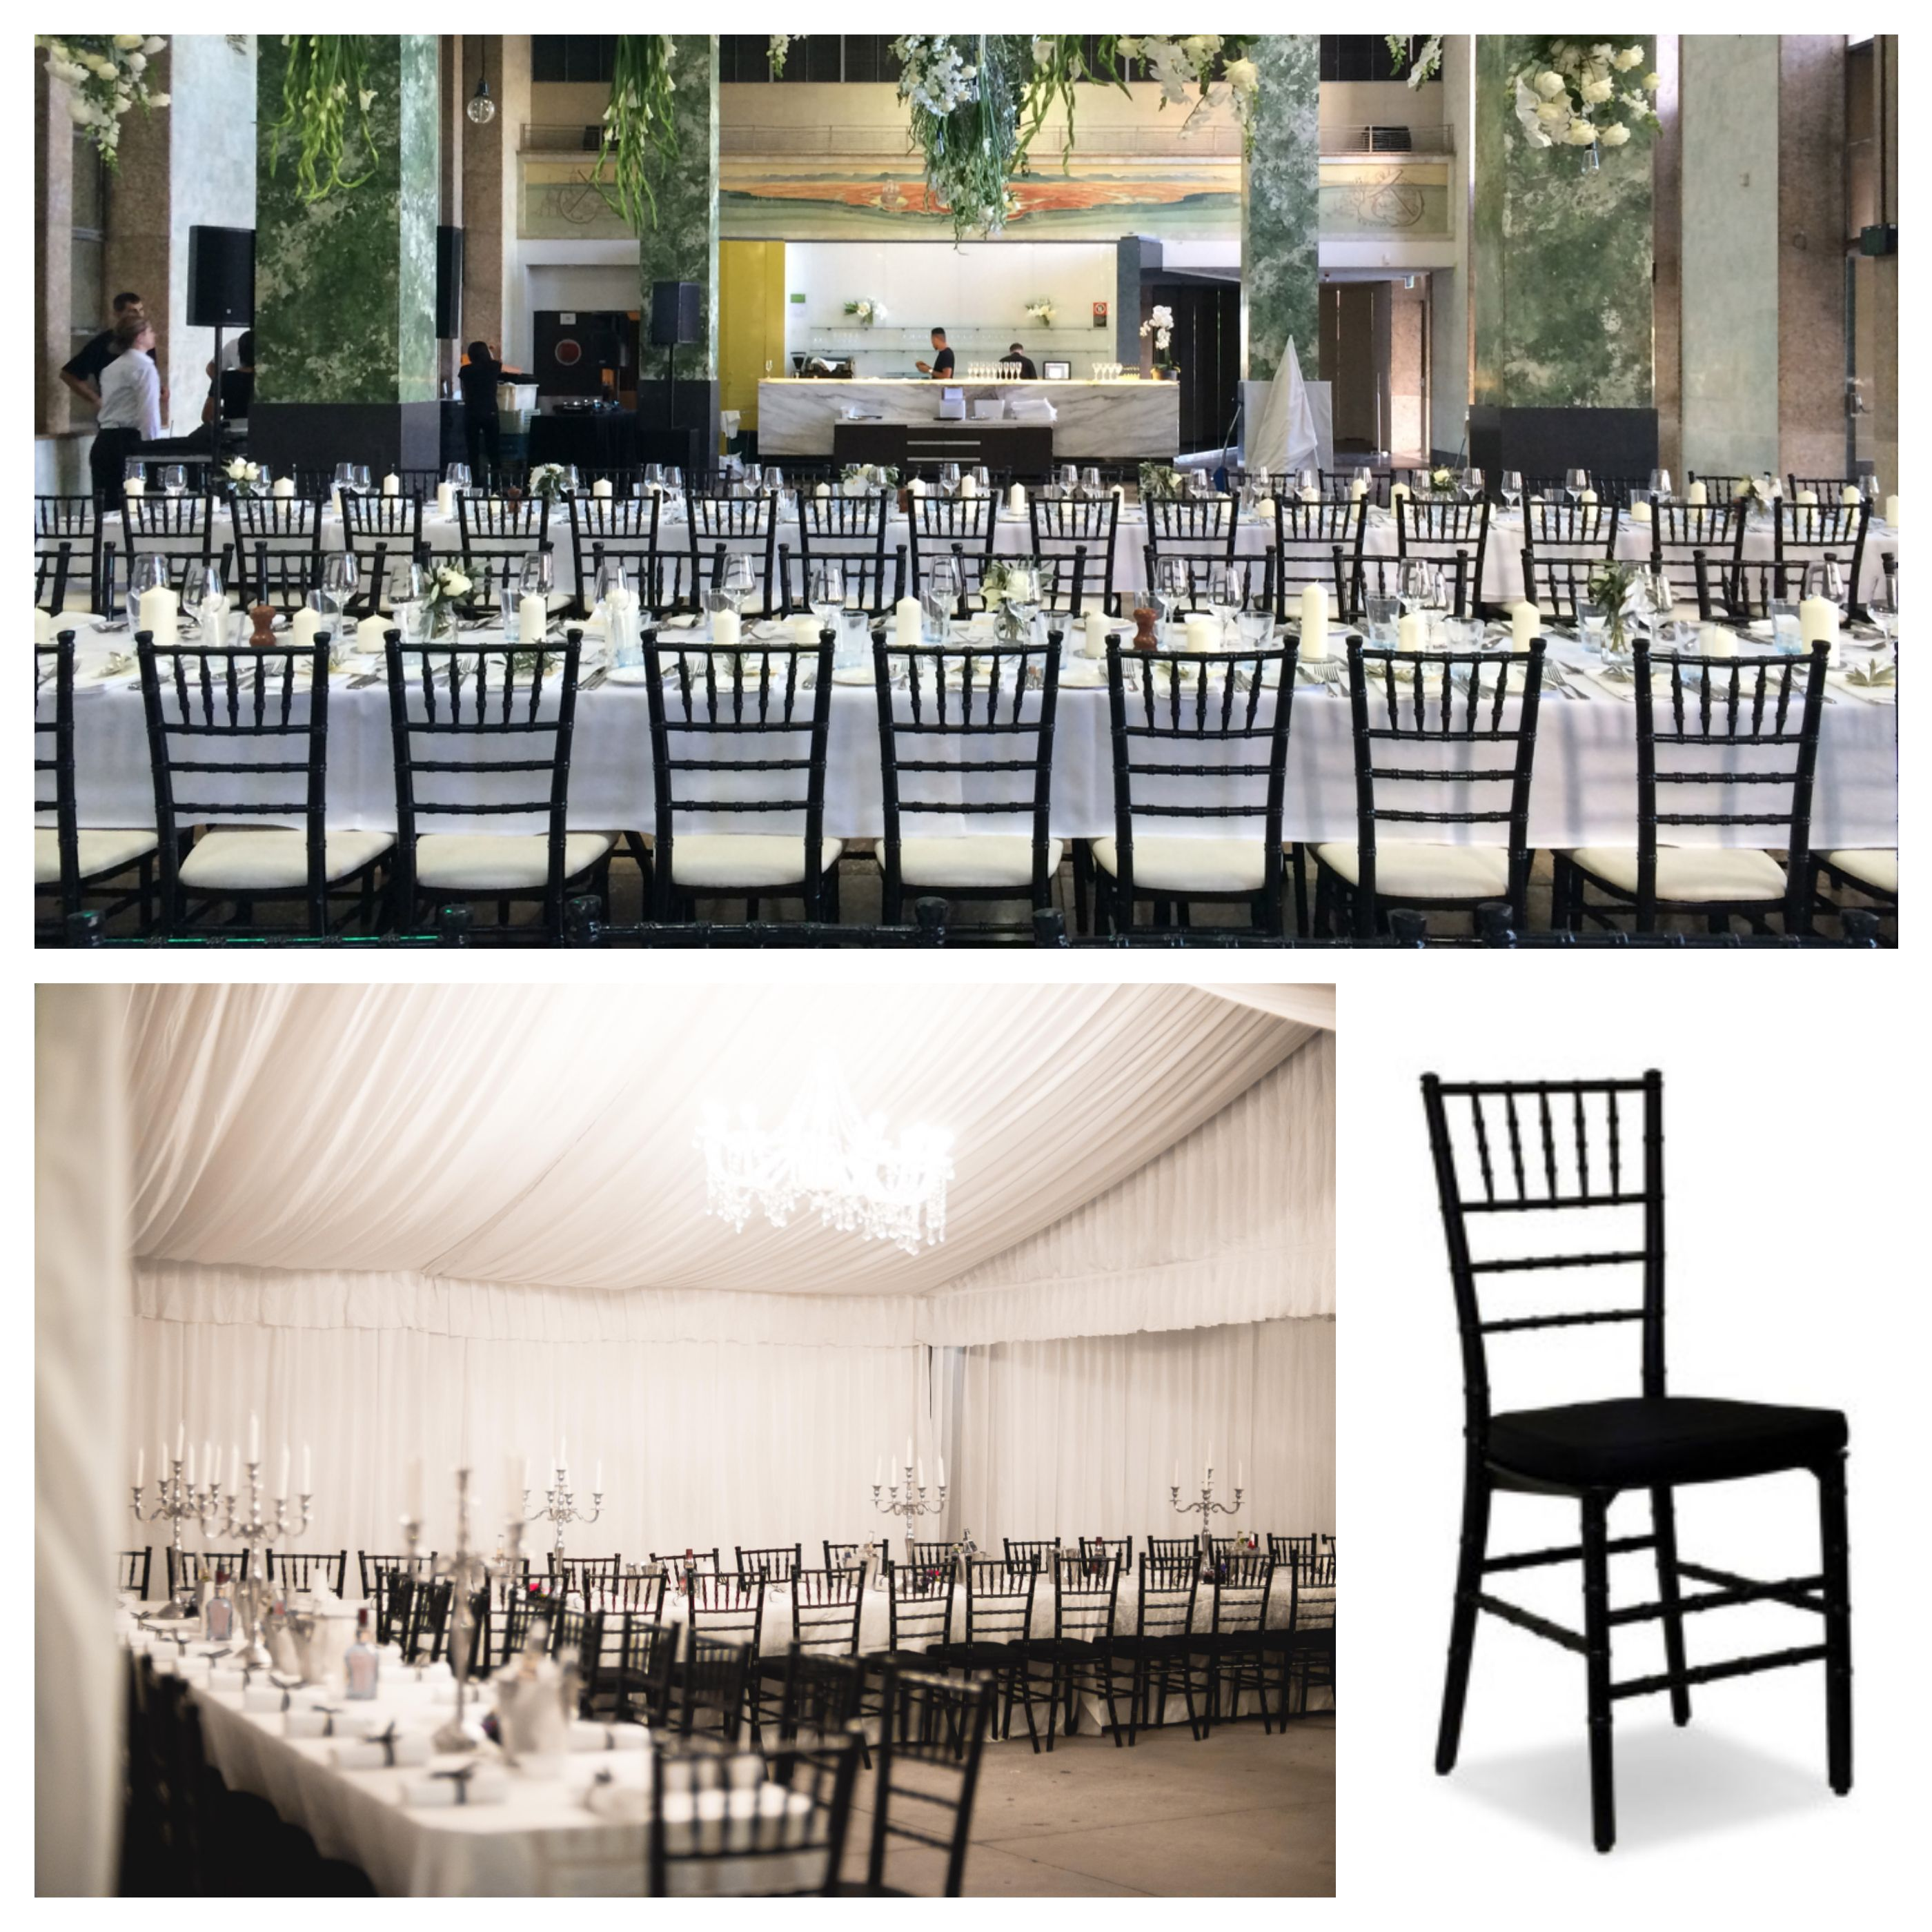 the black tiffany chair is perfect for an outdoor marquee wedding or